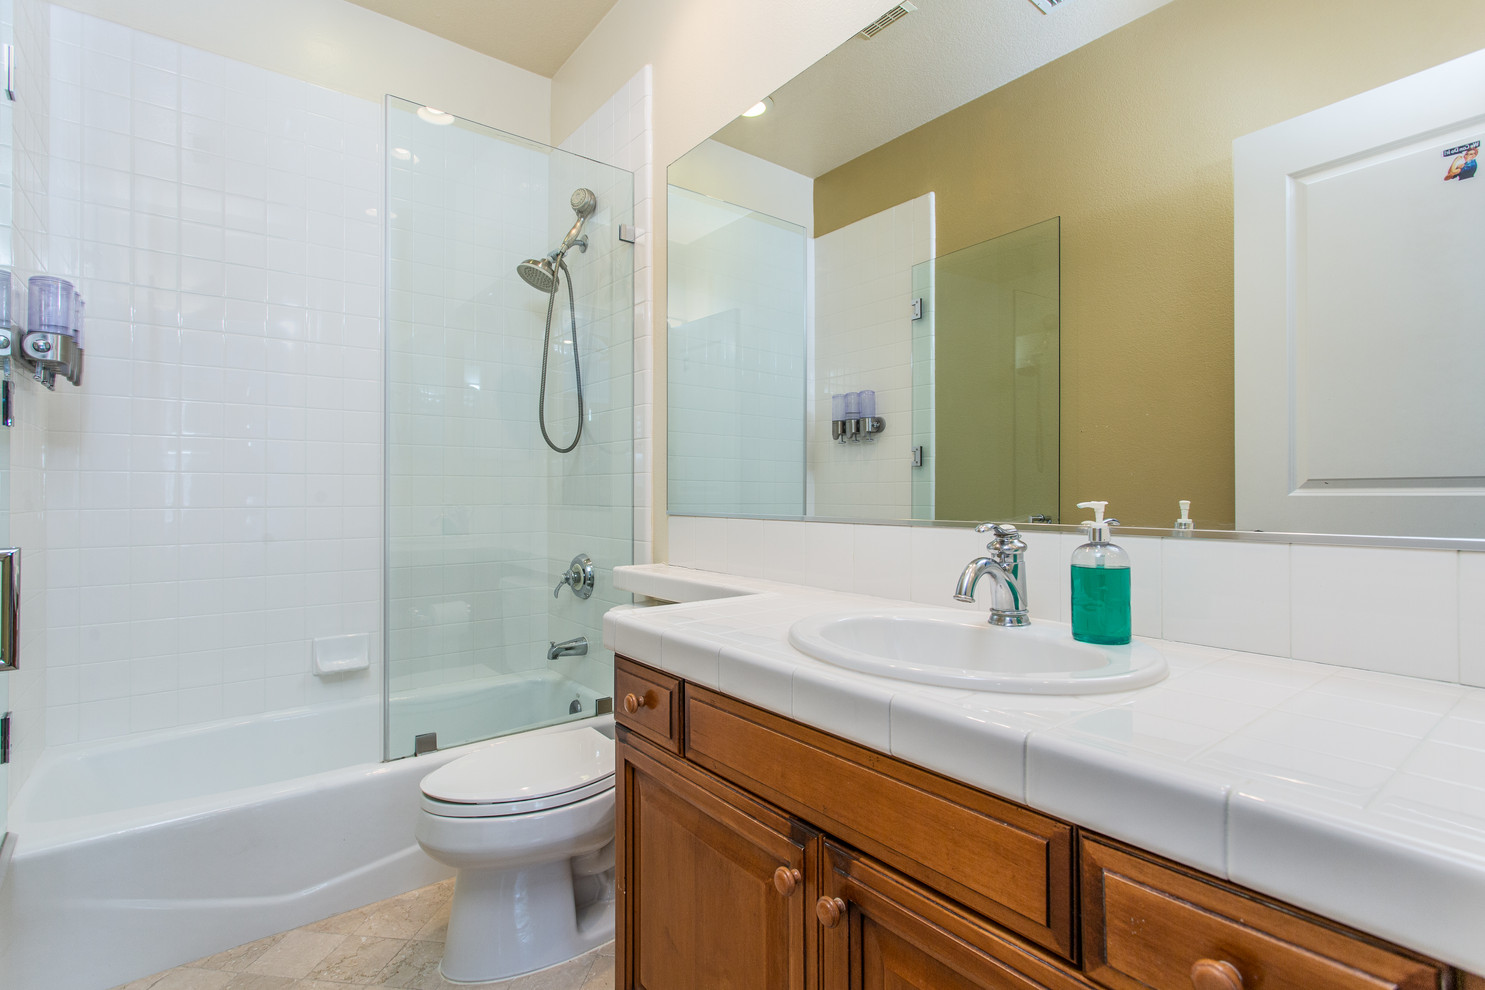 1543 Sycamore Canyon Dr - HsH Prod.-31.j